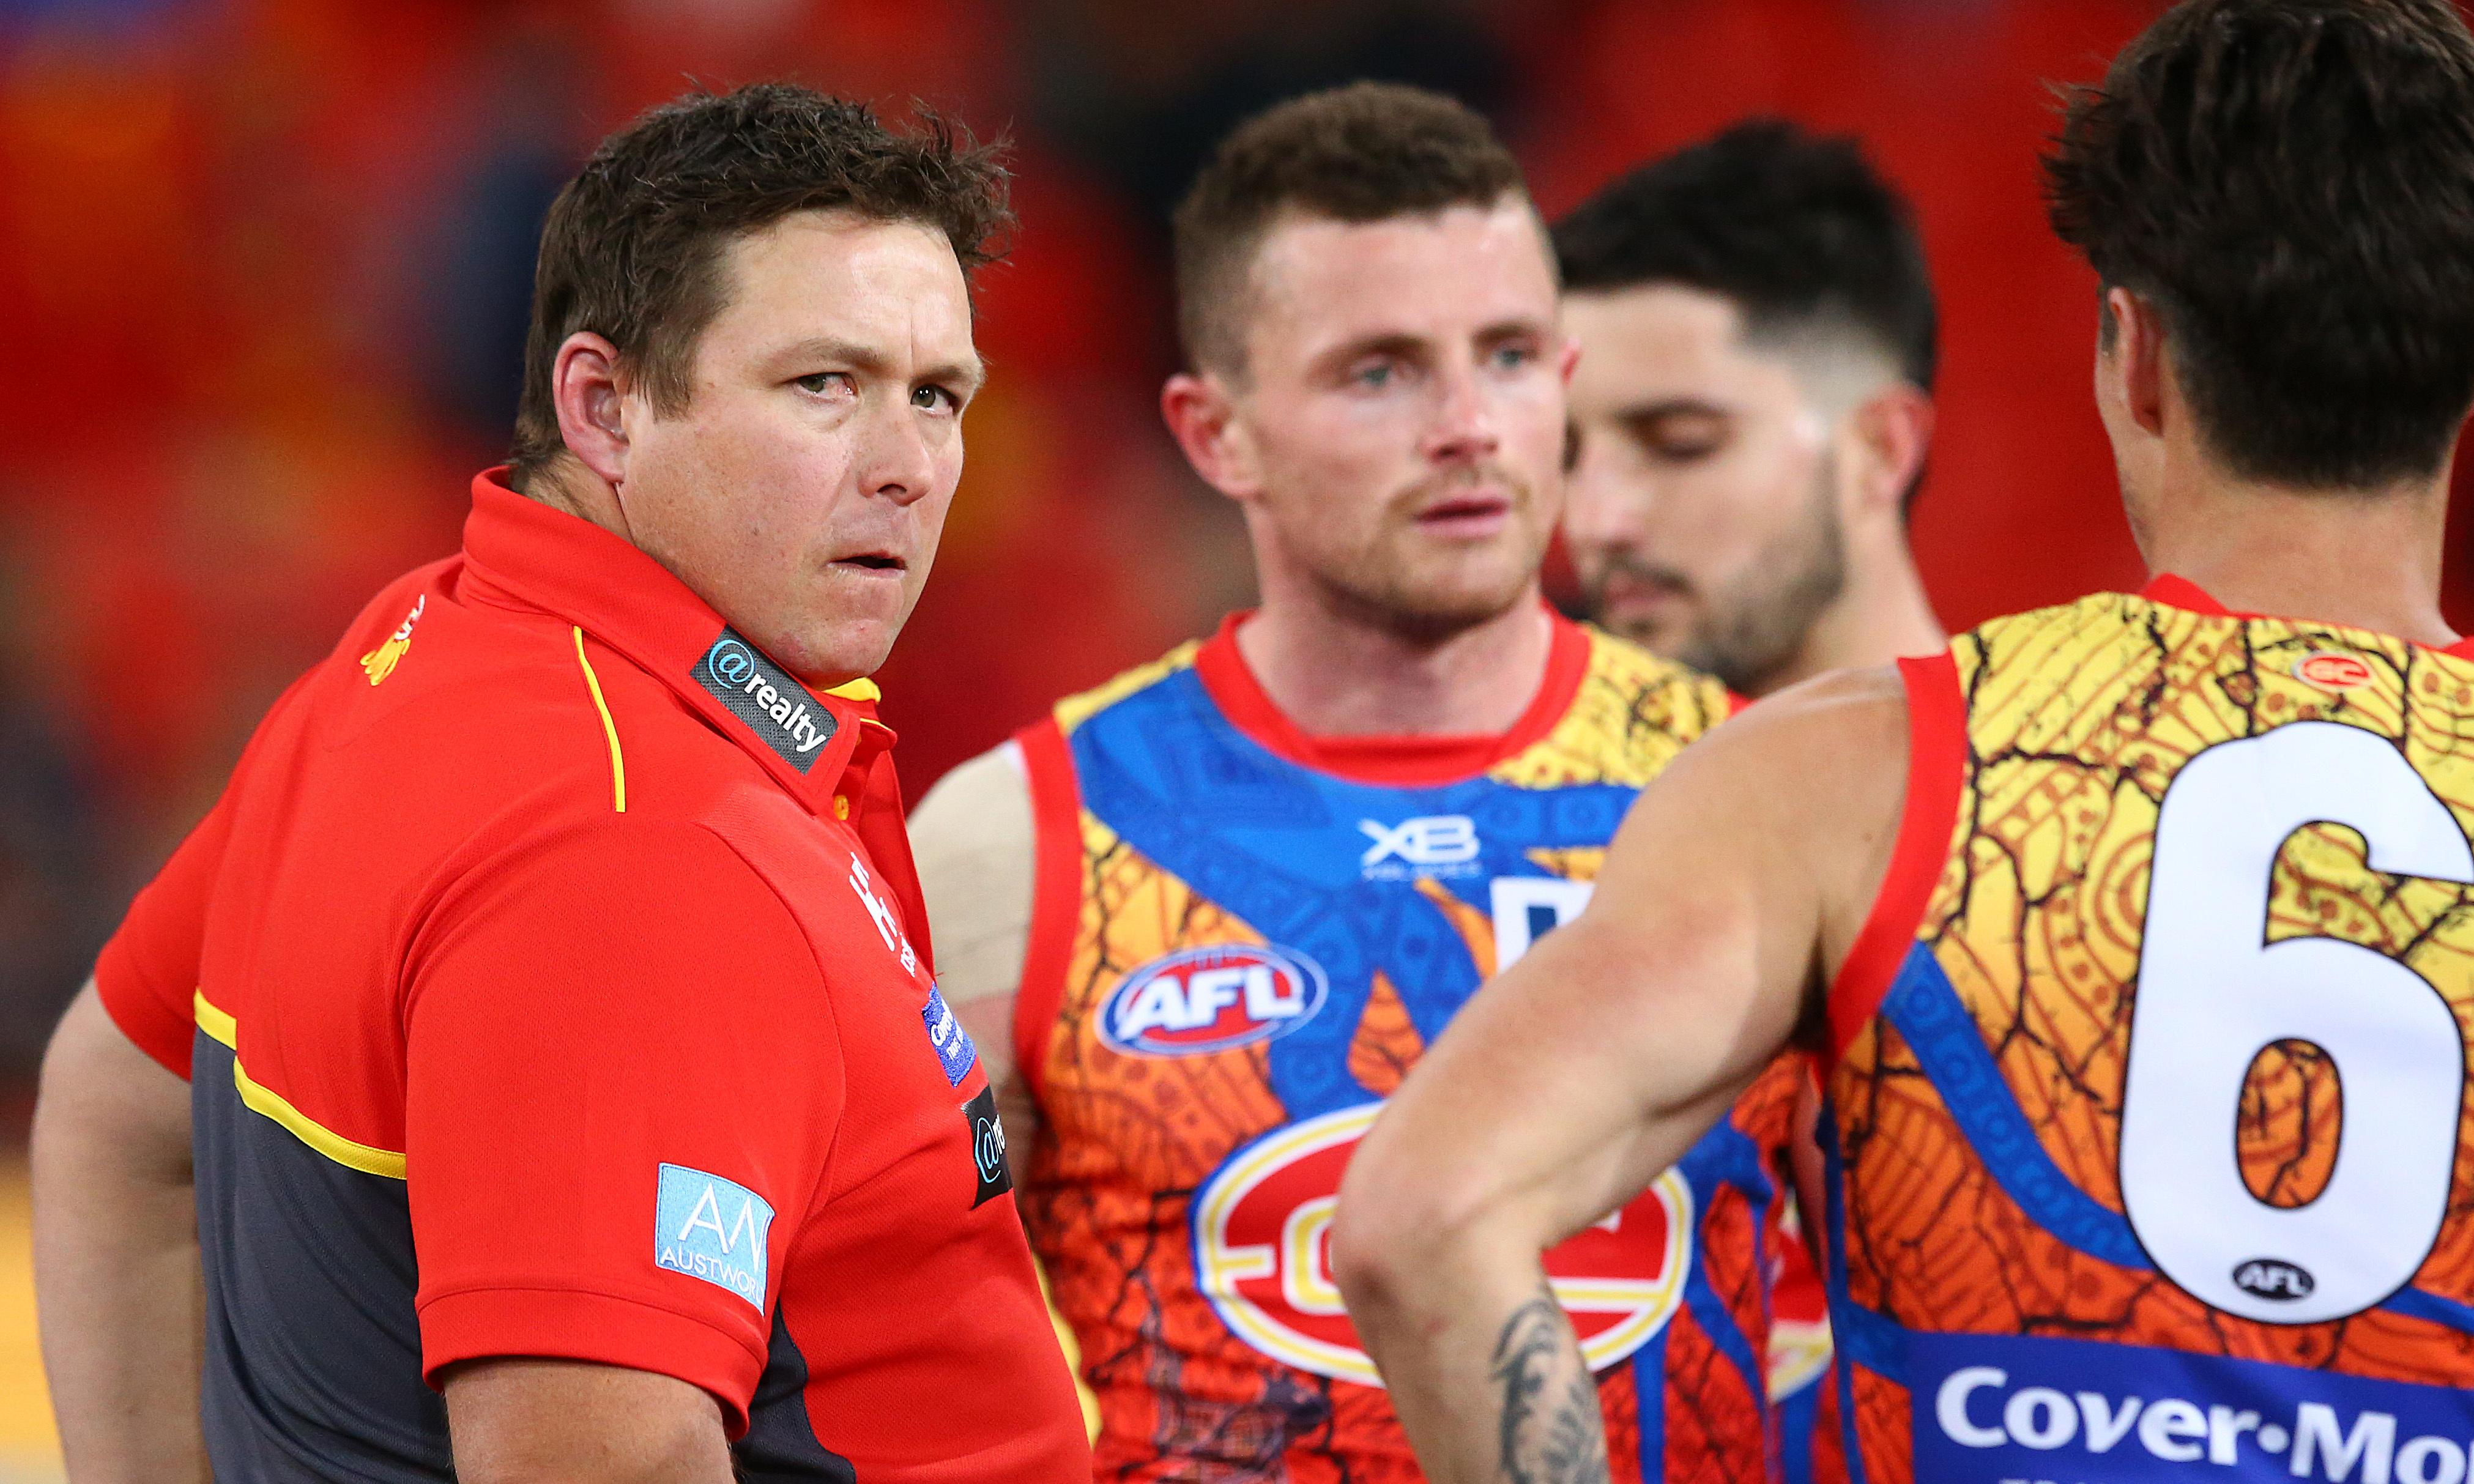 Sunk-cost Gold Coast Suns little more than an AFL punchline